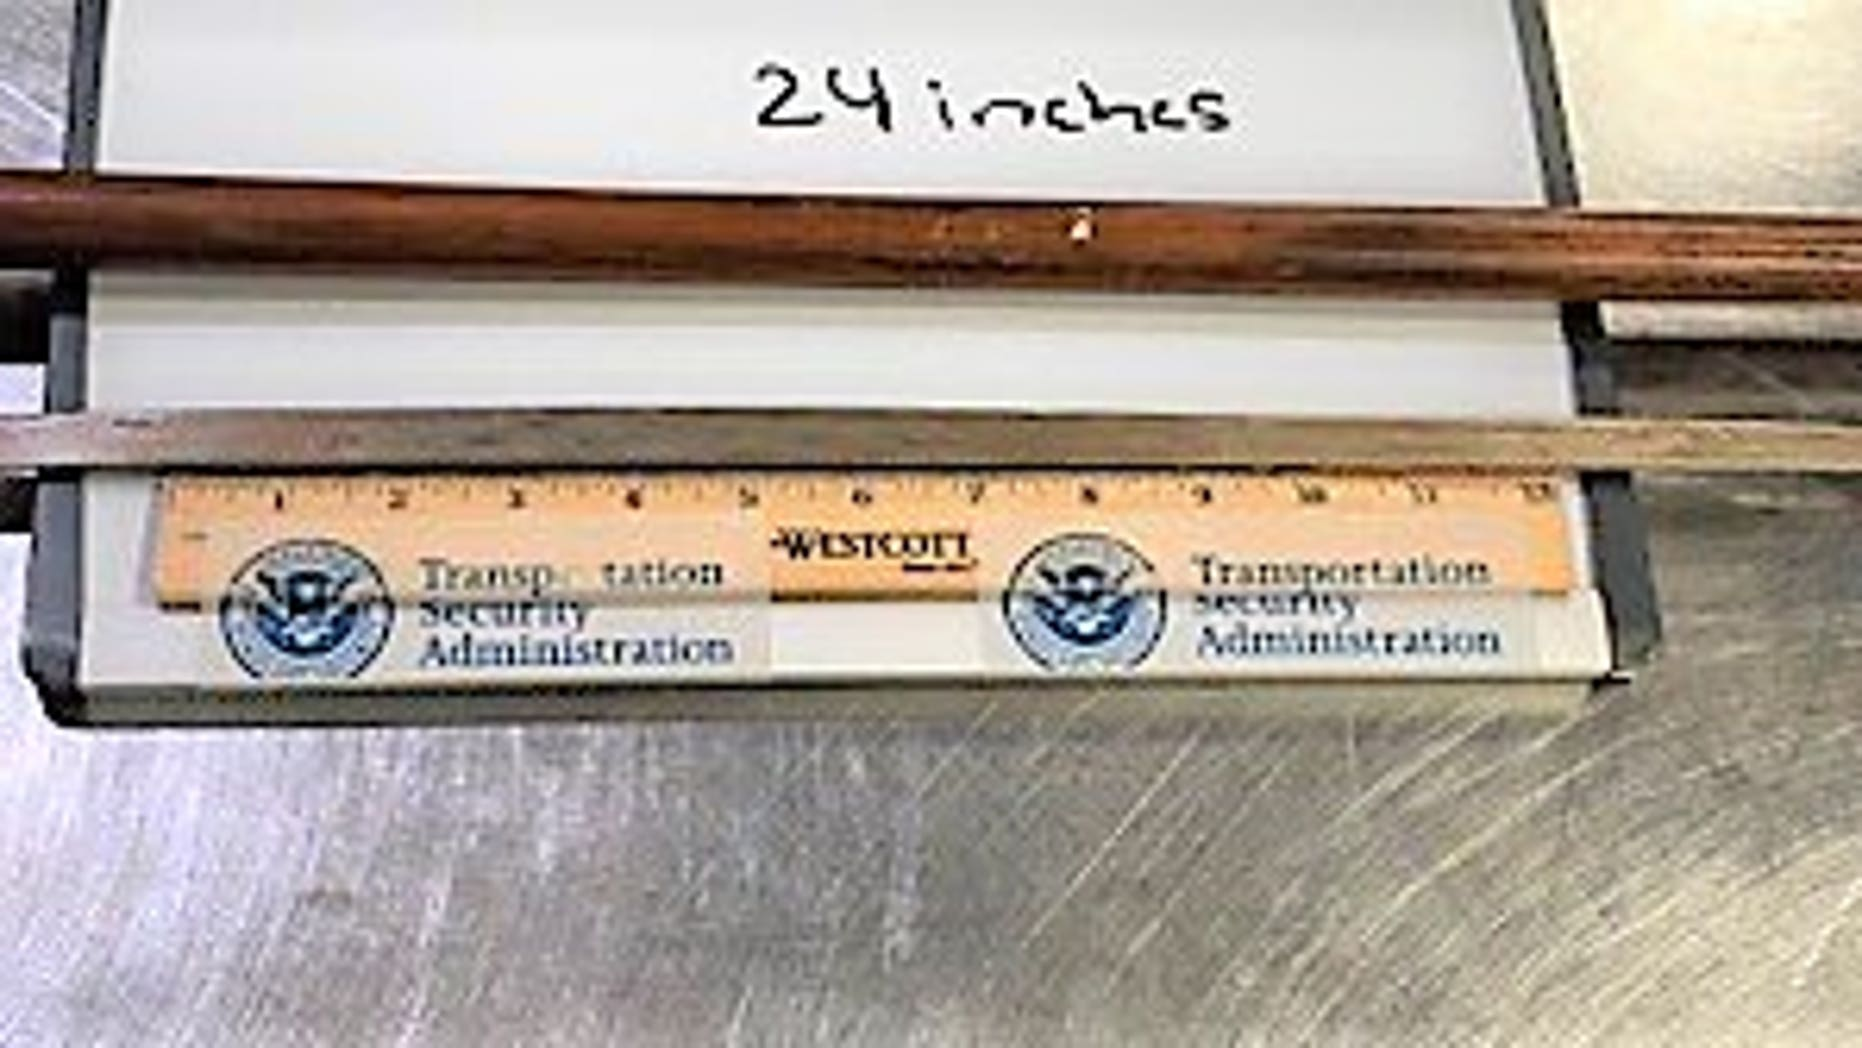 The sword was discovered by a TSA officer at the checkpoint after the cane went through the X-ray monitor.